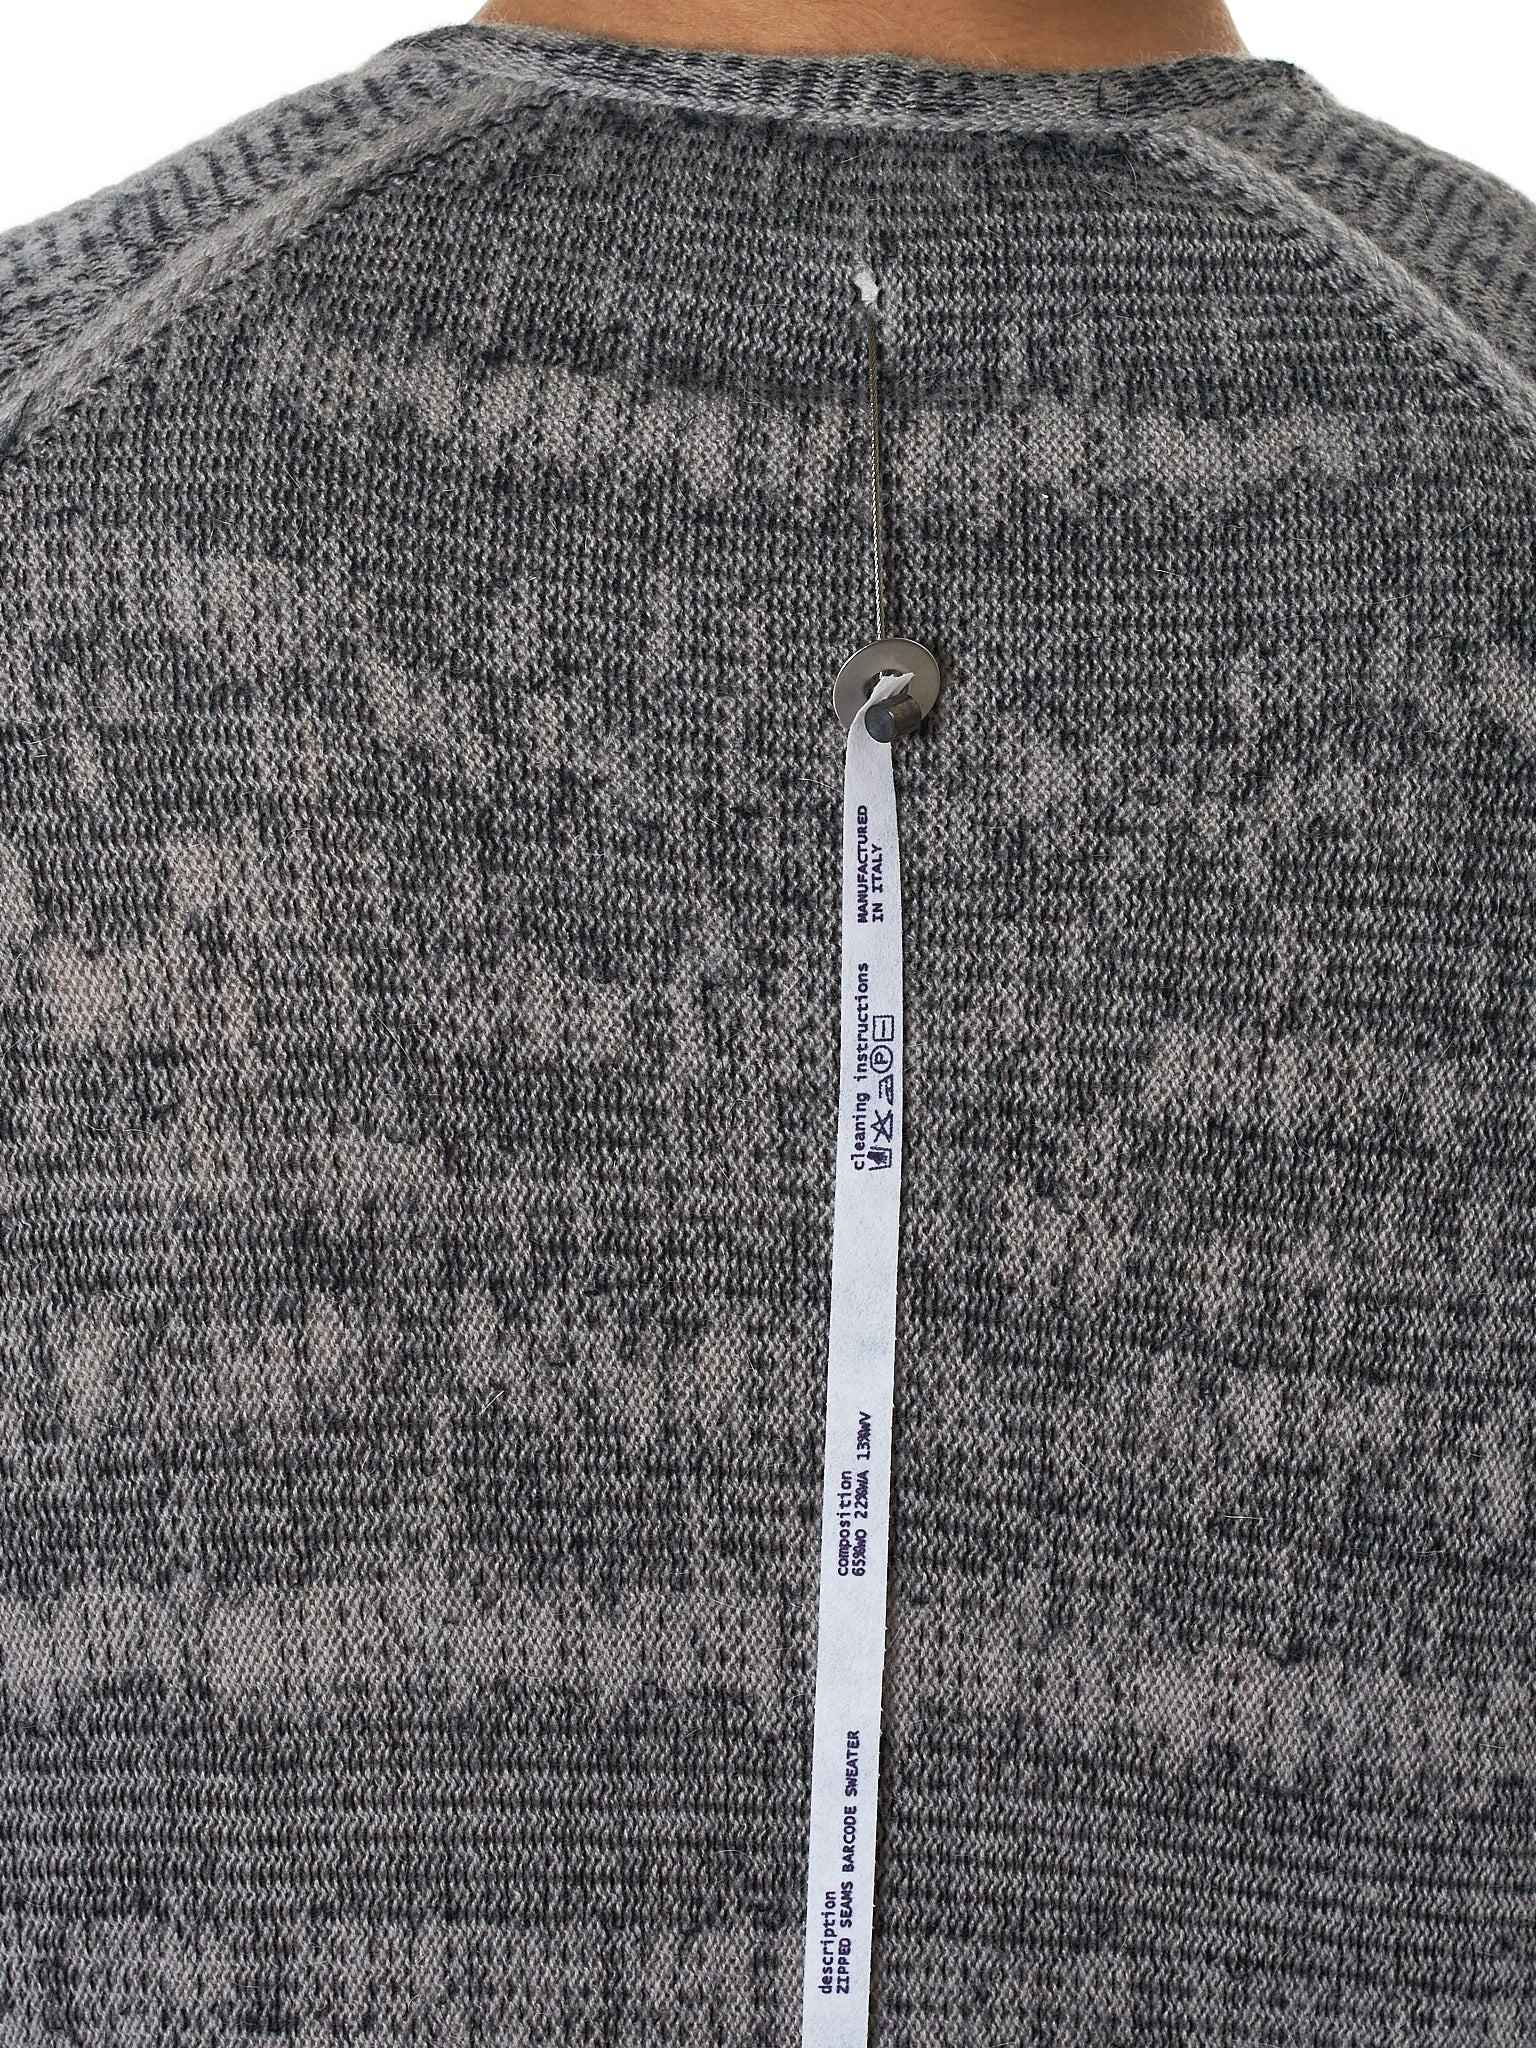 Label Under Construction Sweater - Hlorenzo Detail 2